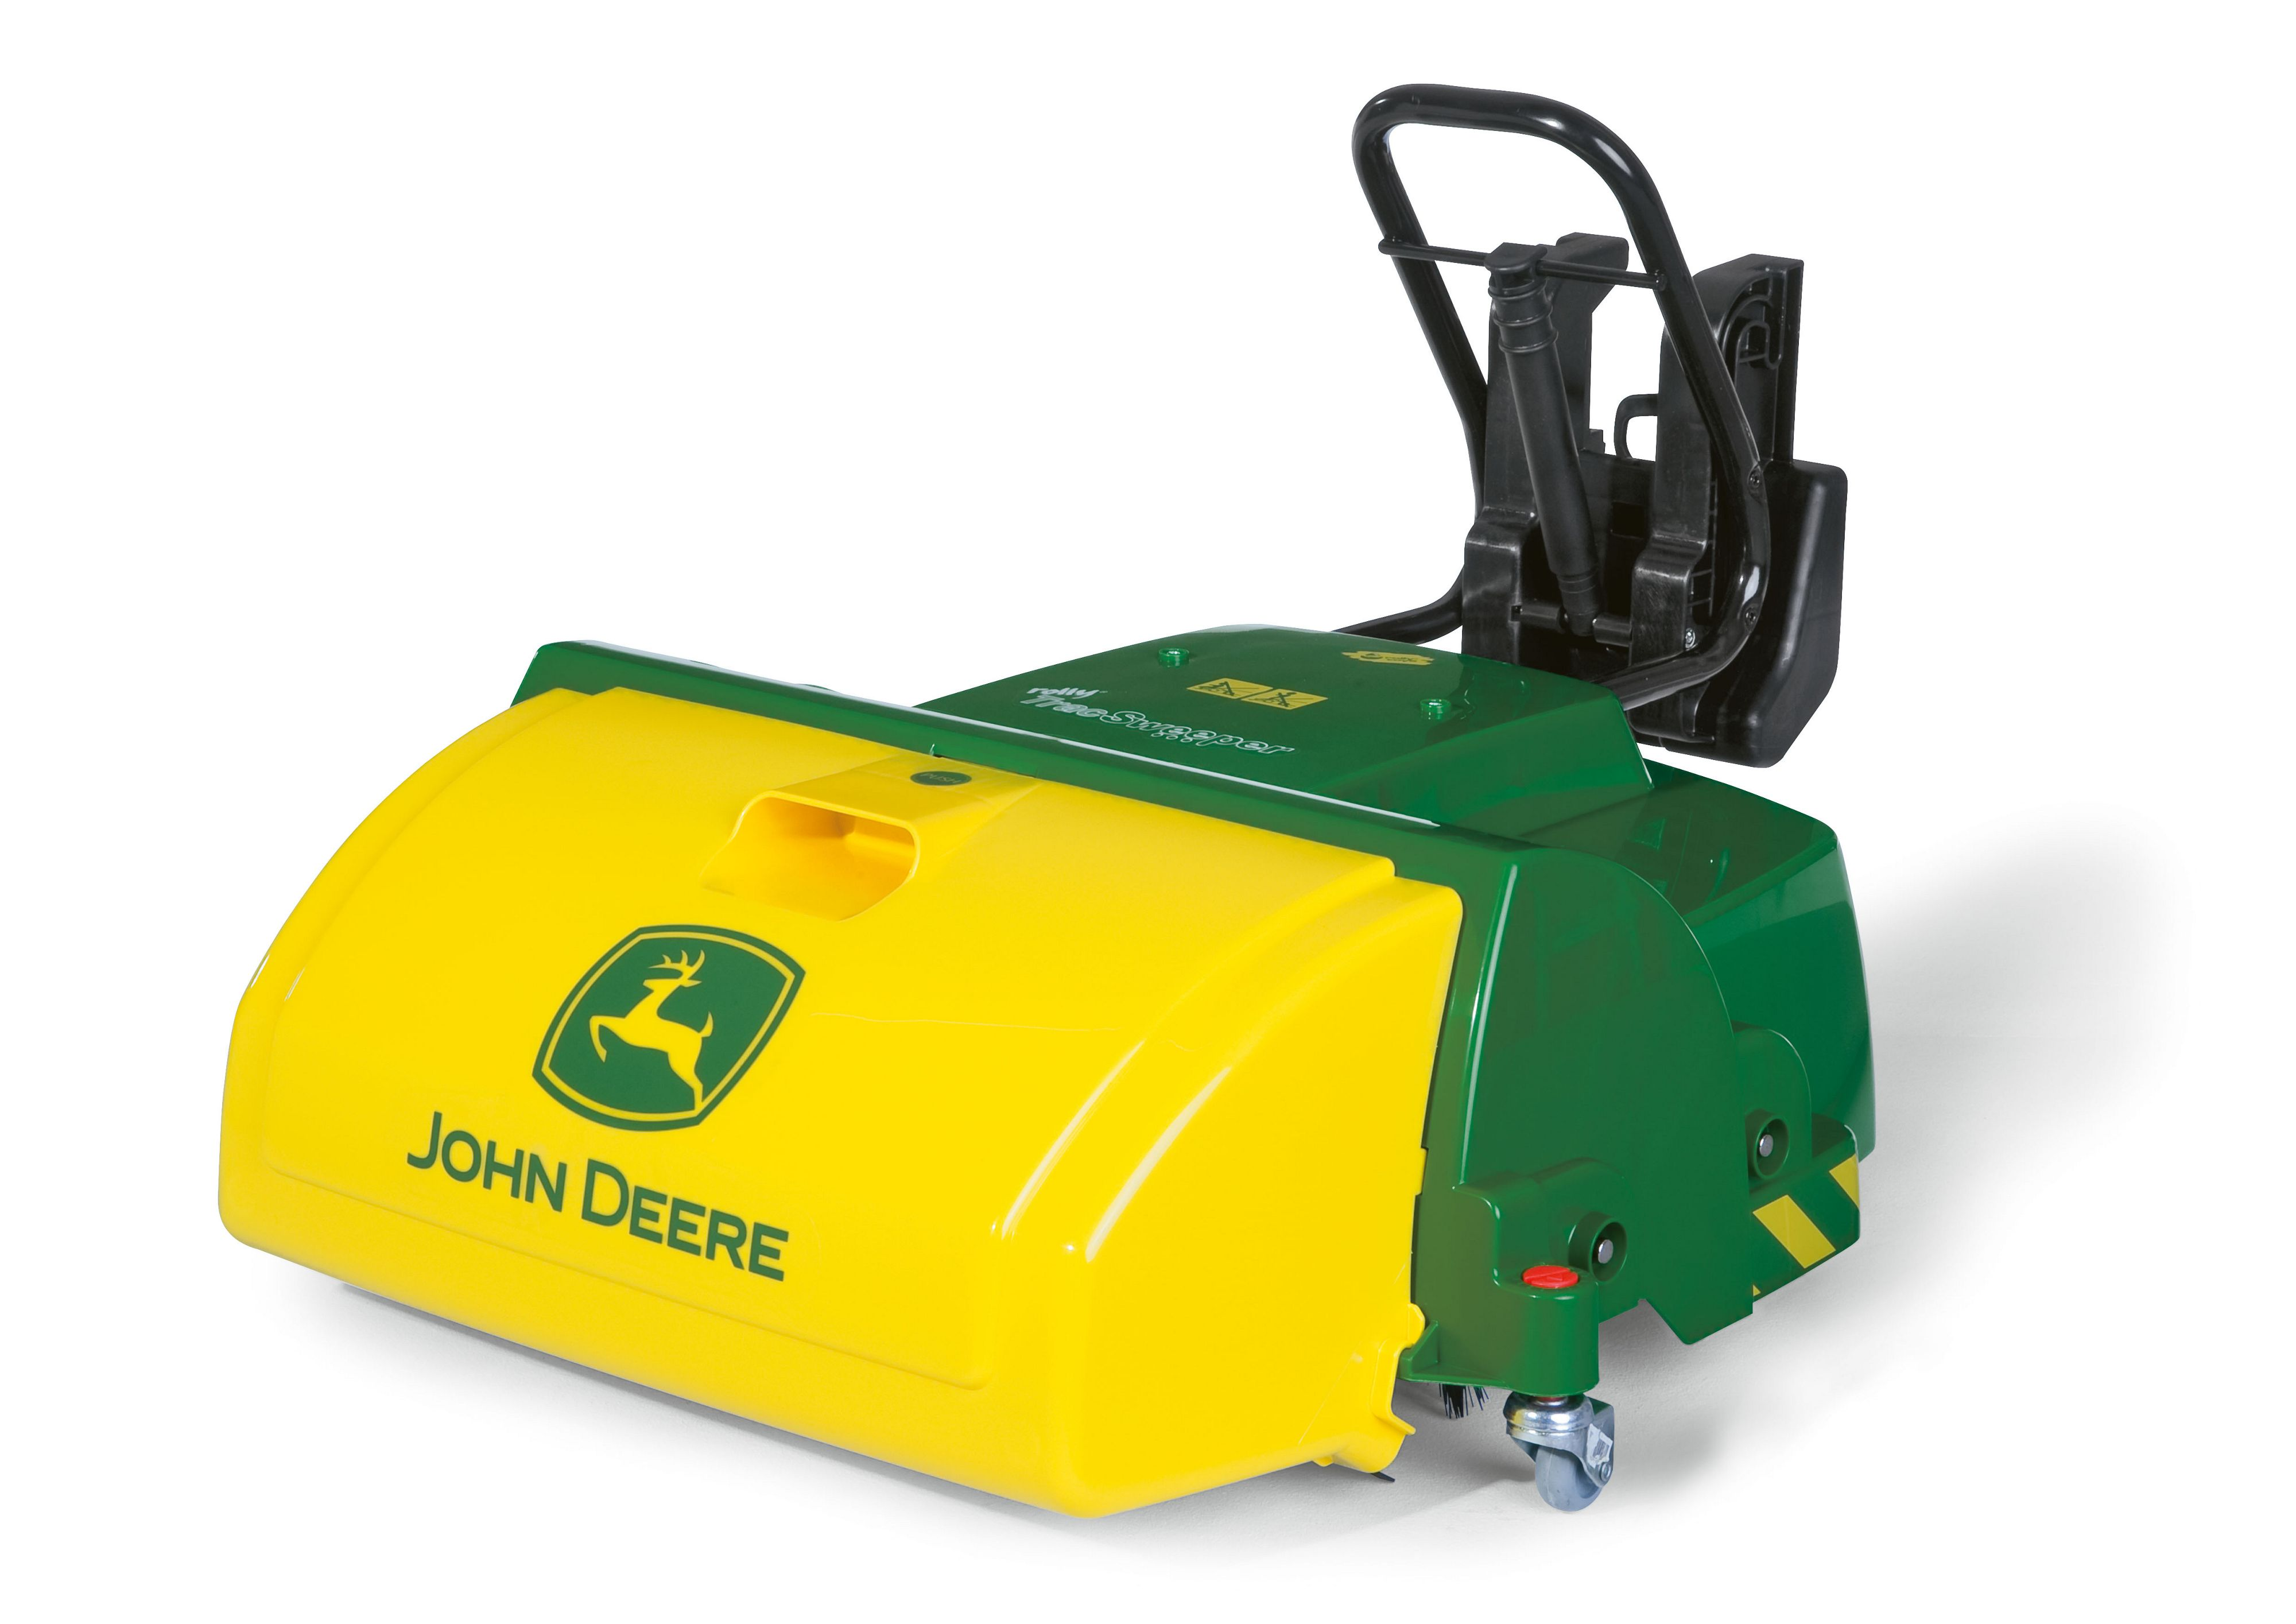 John Deere Tractor Mounted Road Sweeper